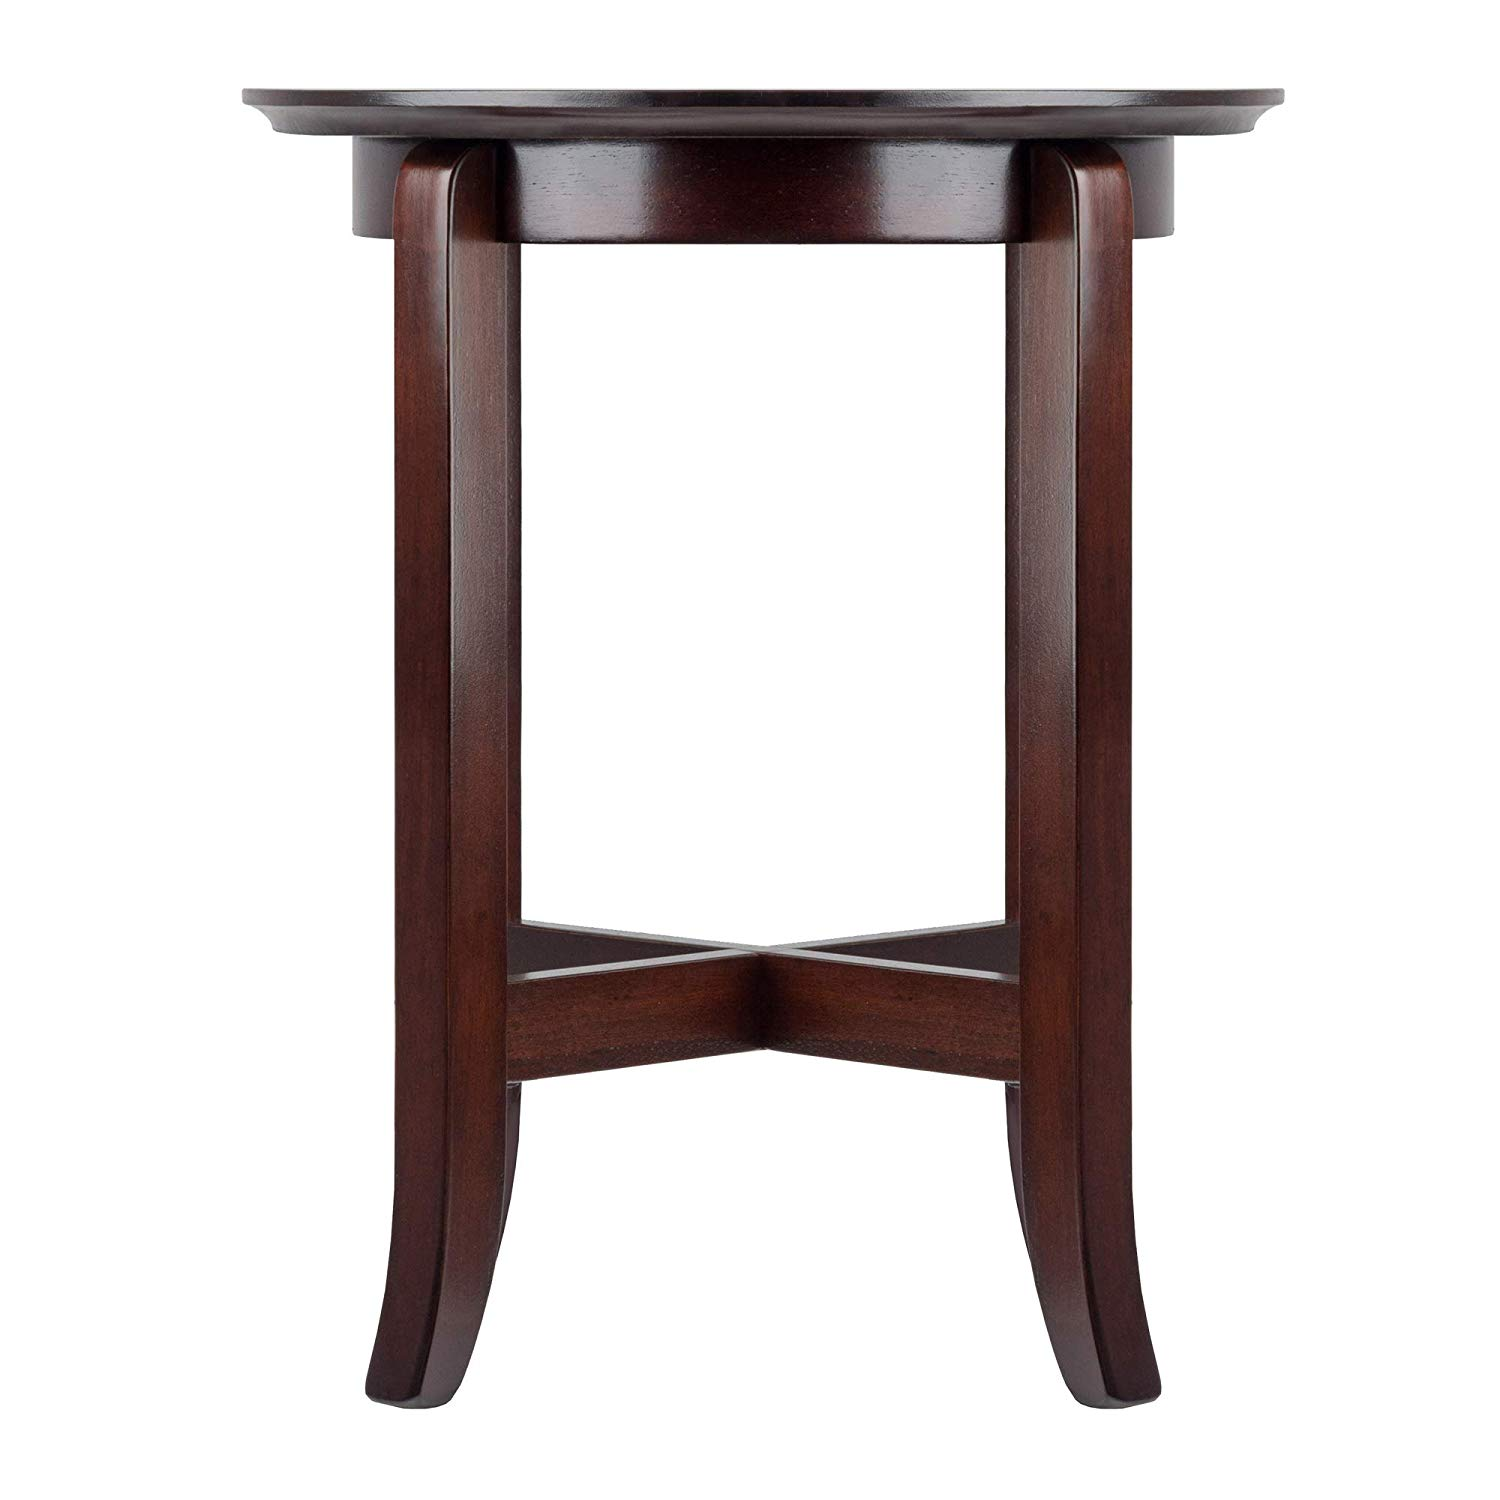 winsome wood toby occasional table espresso walzl cassie accent with glass top cappuccino finish kitchen dining red outdoor oval farmhouse kidney shaped half moon pottery barn